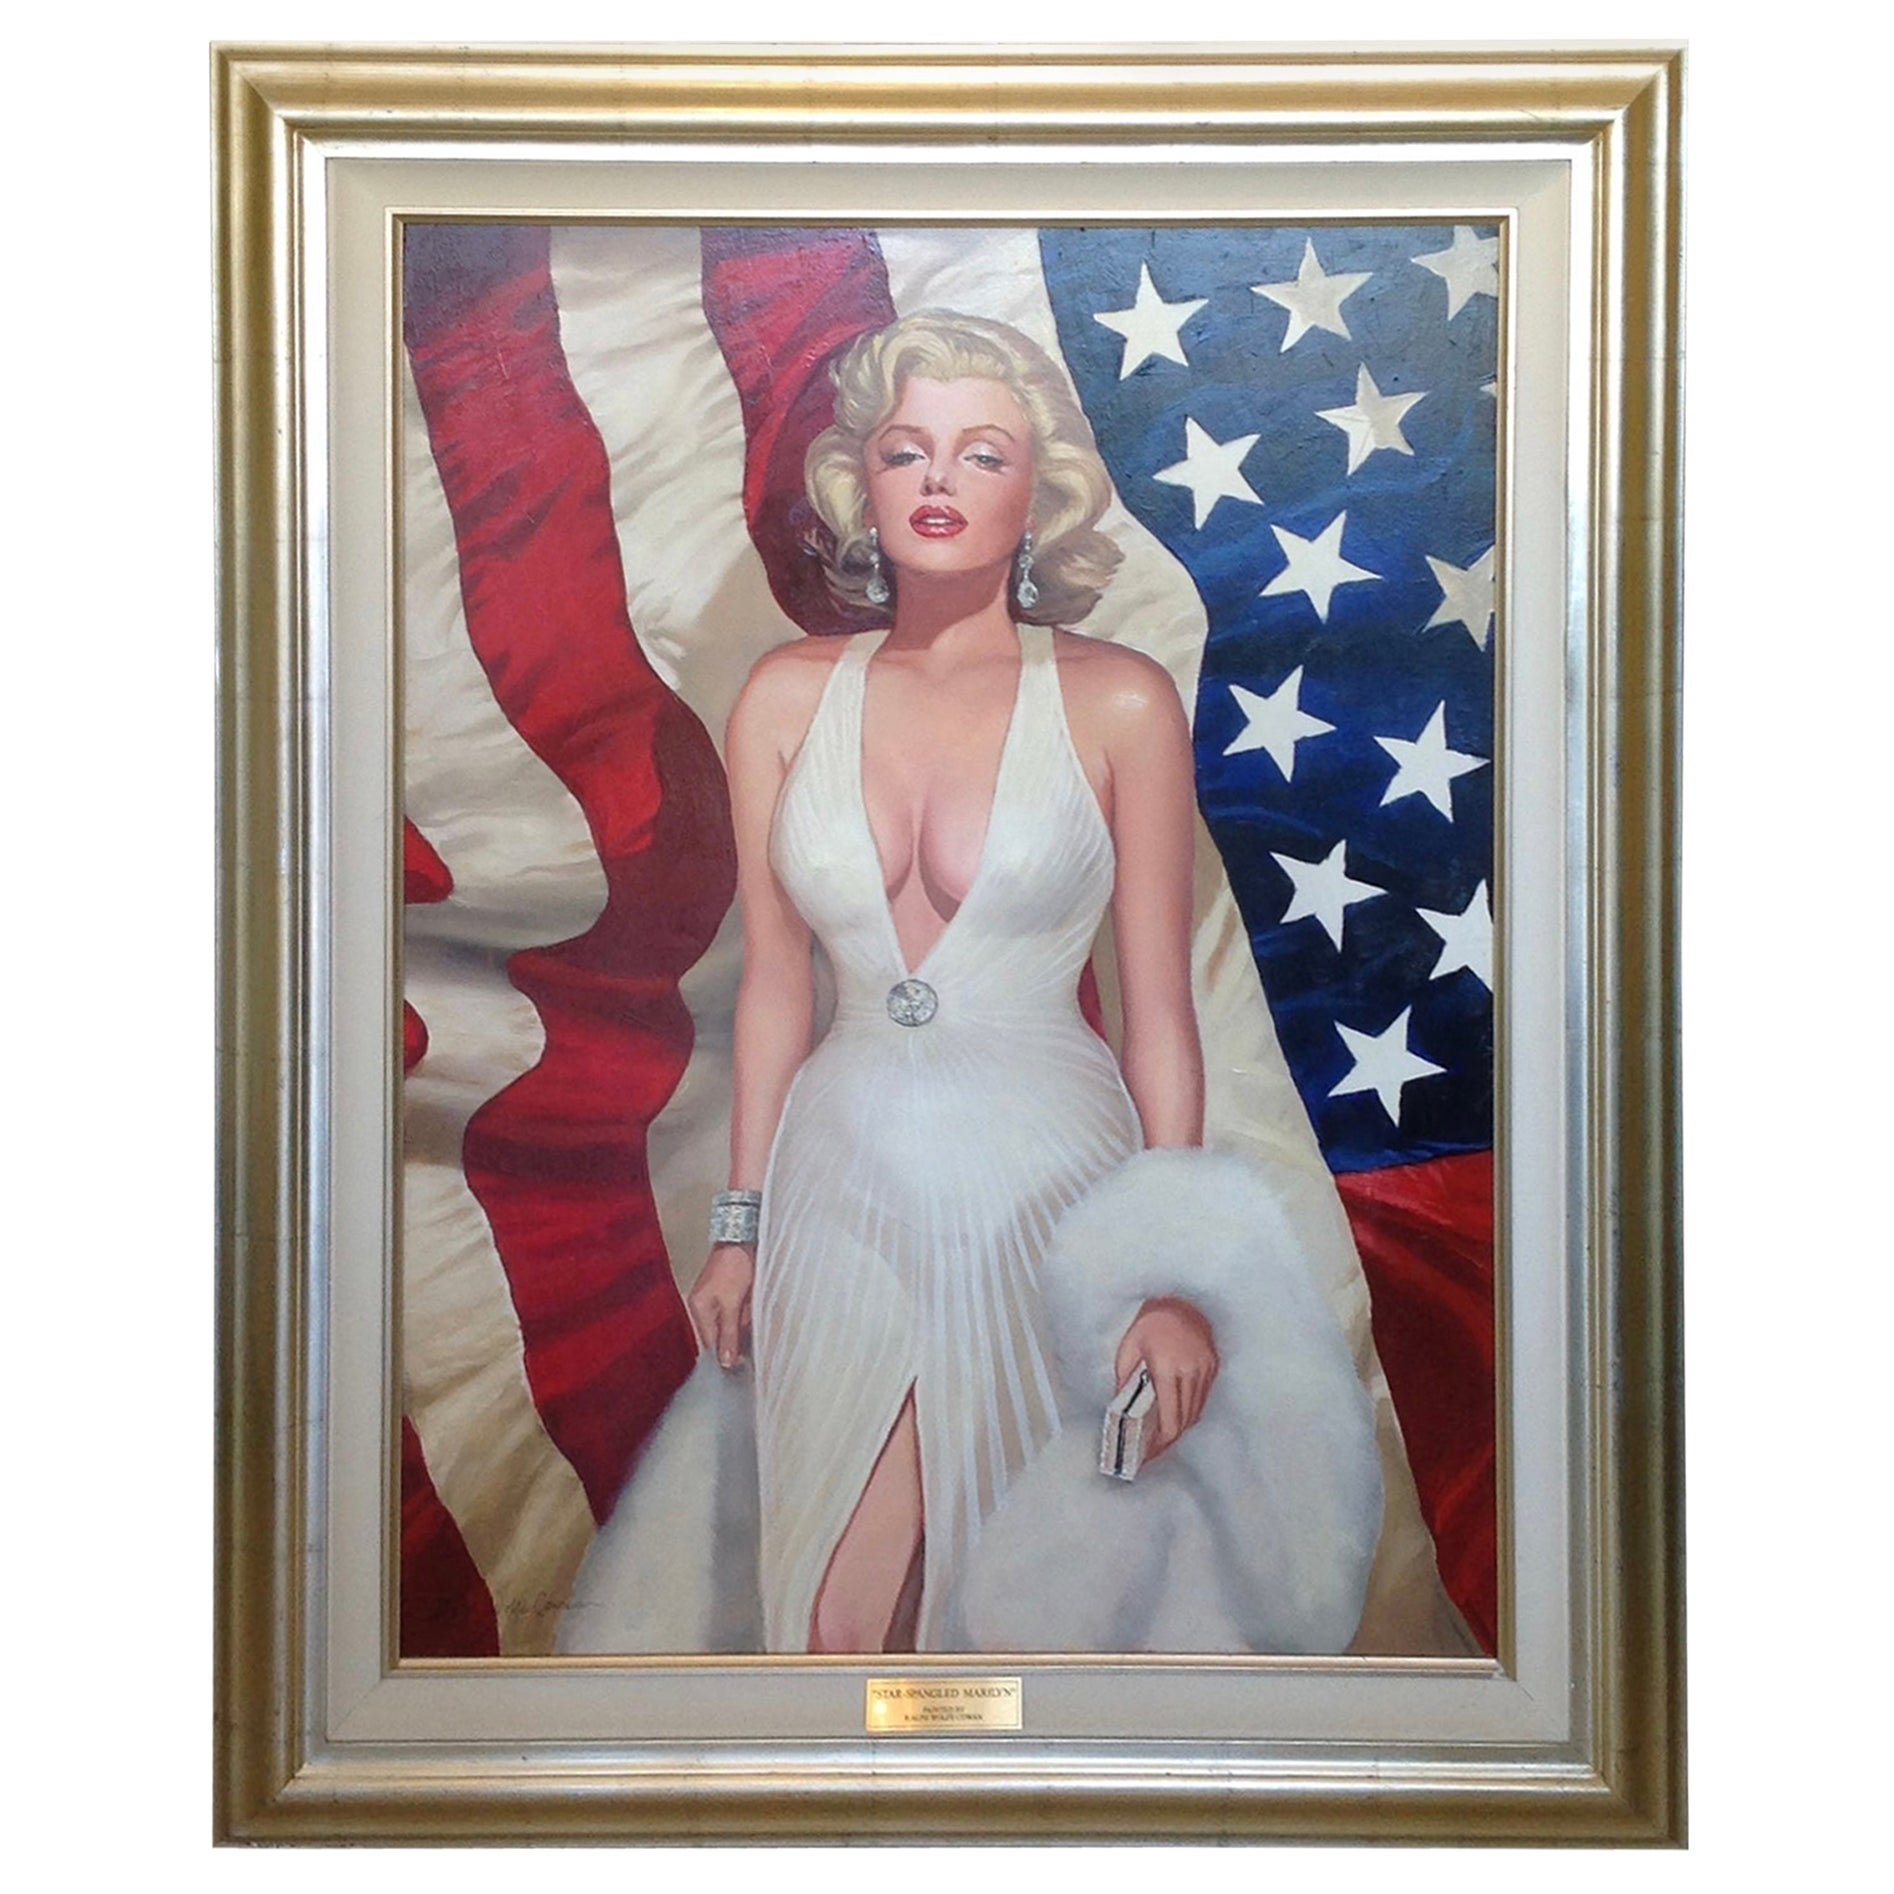 Nearly Life Size Oil Painting of Marilyn Monroe by Ralph Wolfe Cowan